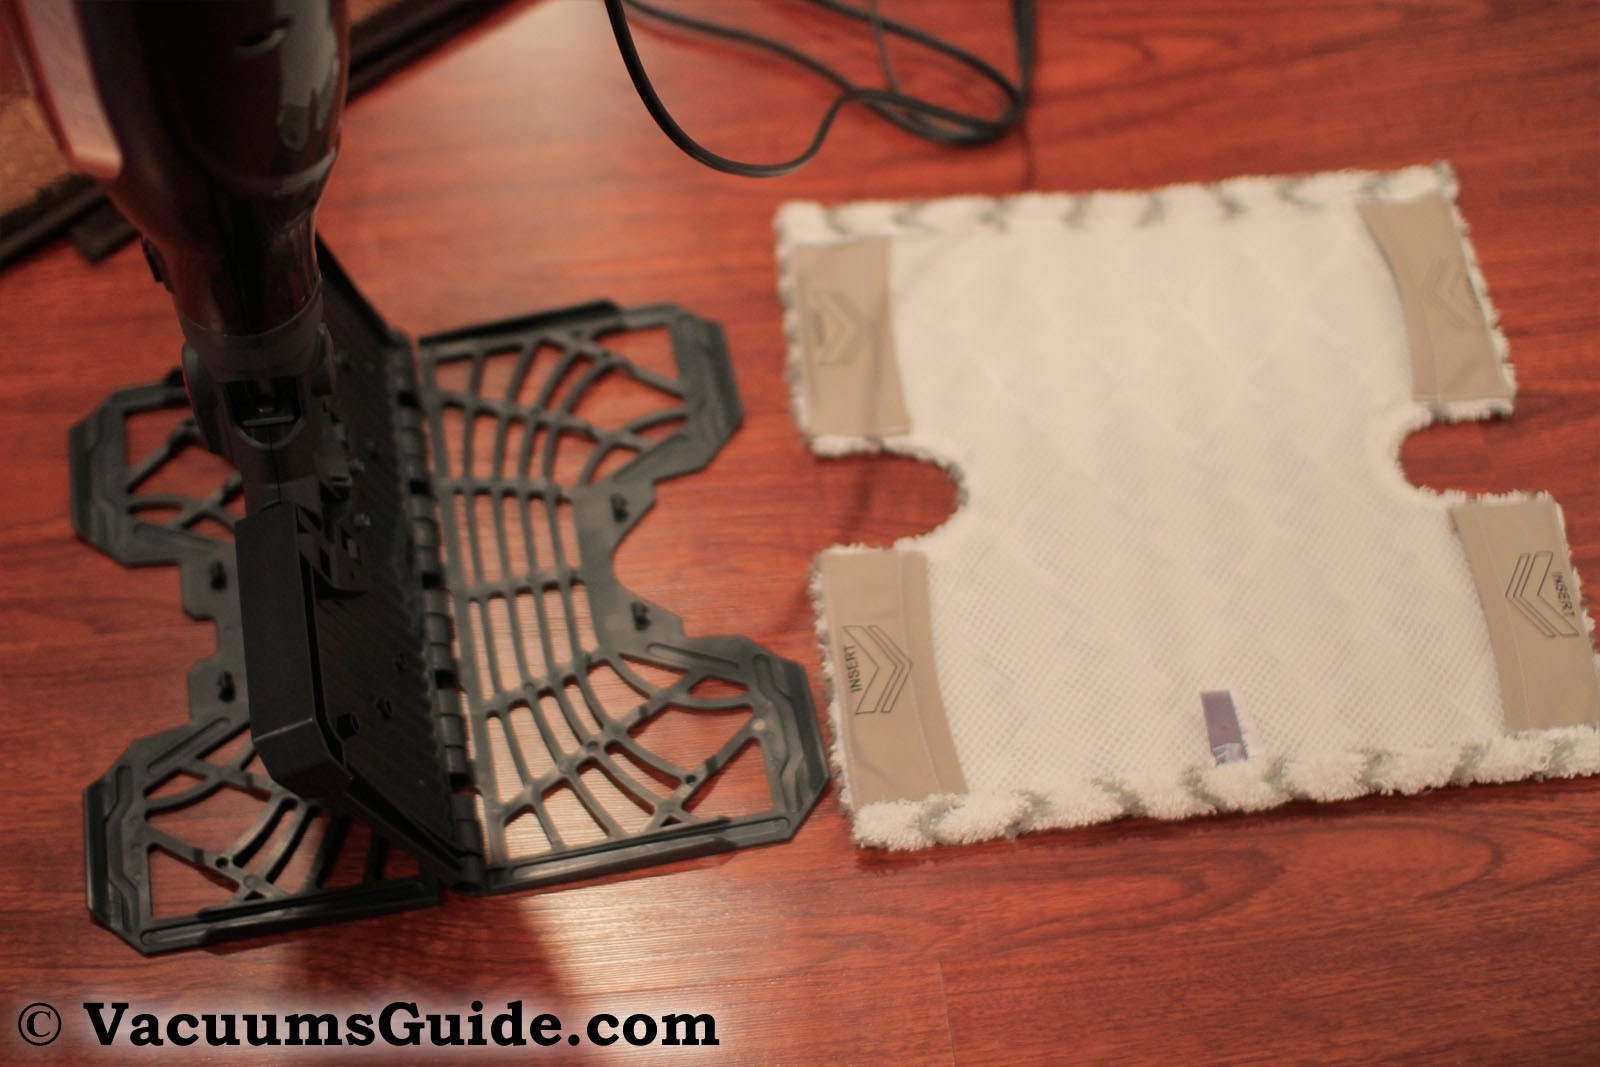 Attaching the pad – step 1